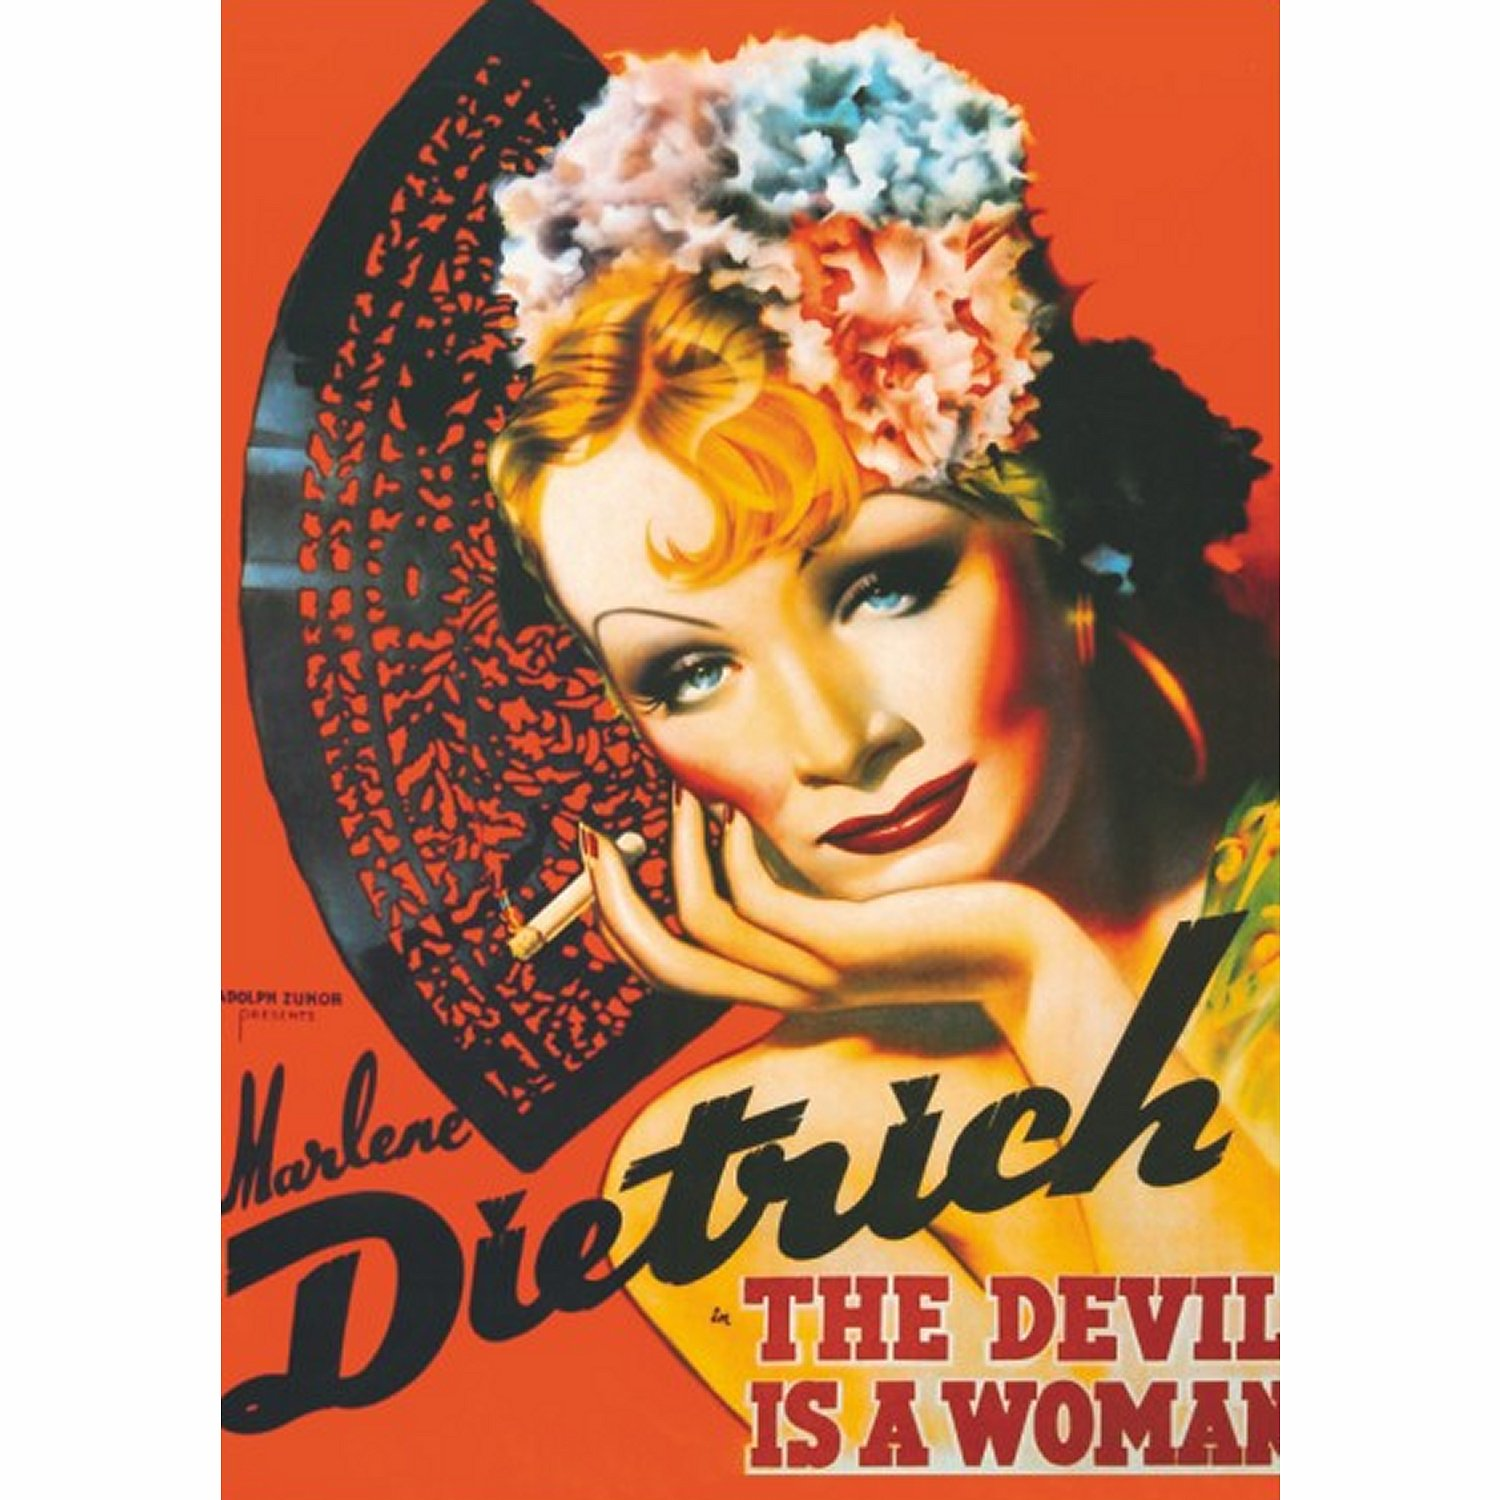 dtoys-vintage-posters-marlene-dietrich-the-devis-is-a-woman-1000-teile-puzzle-dtoys-69559